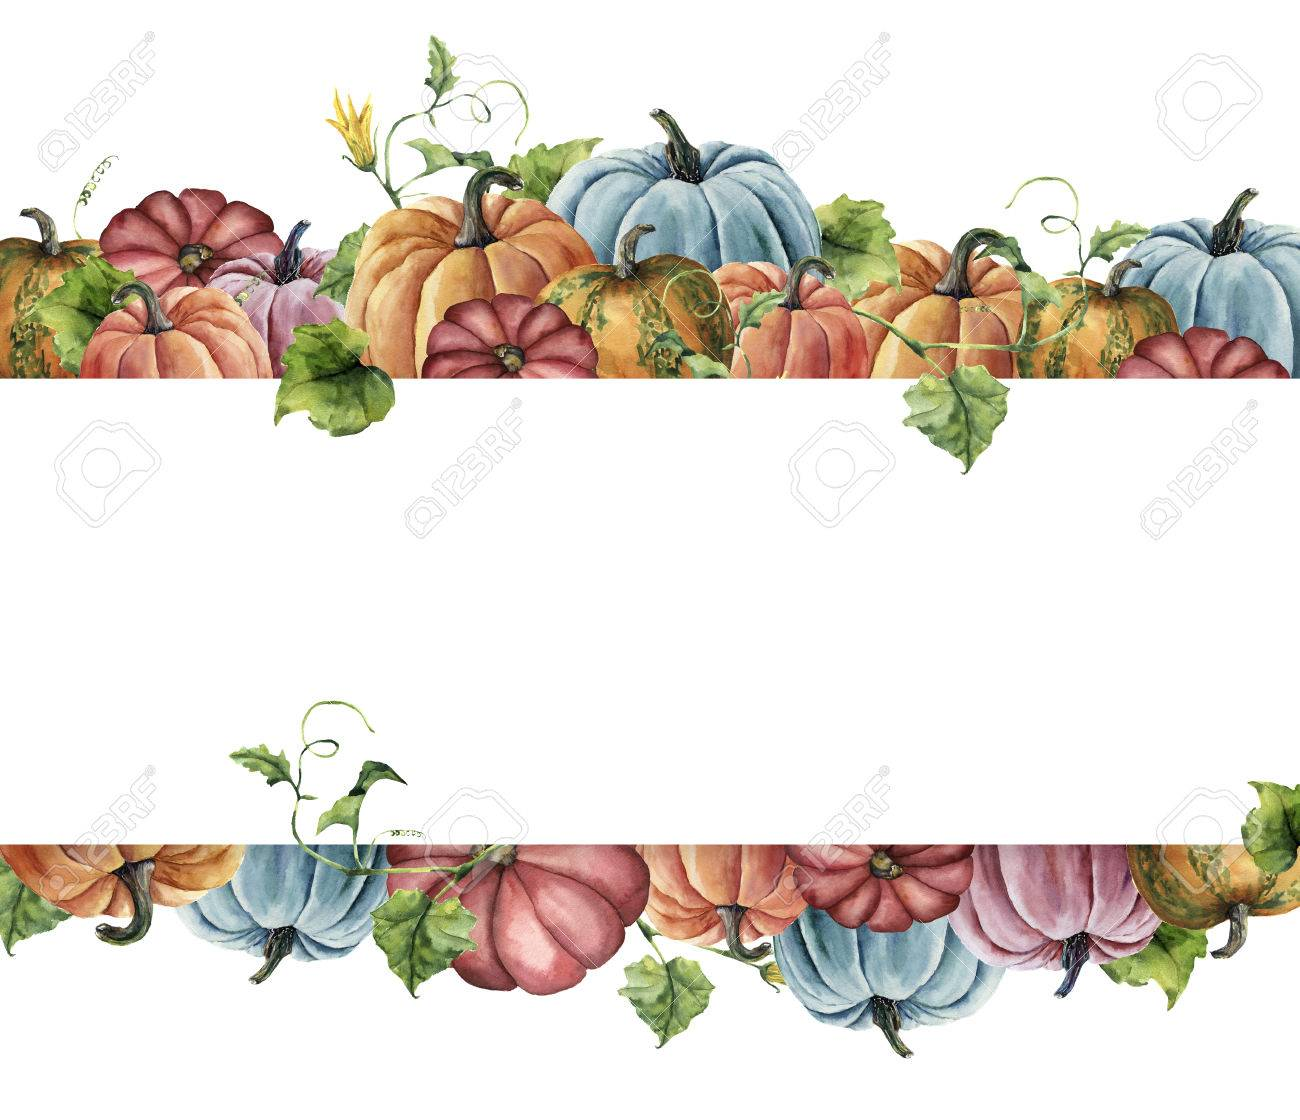 Watercolor autumn harvest card. Hand painted border with bright pumpkins with leaves and flowers isolated on white background. Botanical illustration for design - 83349172